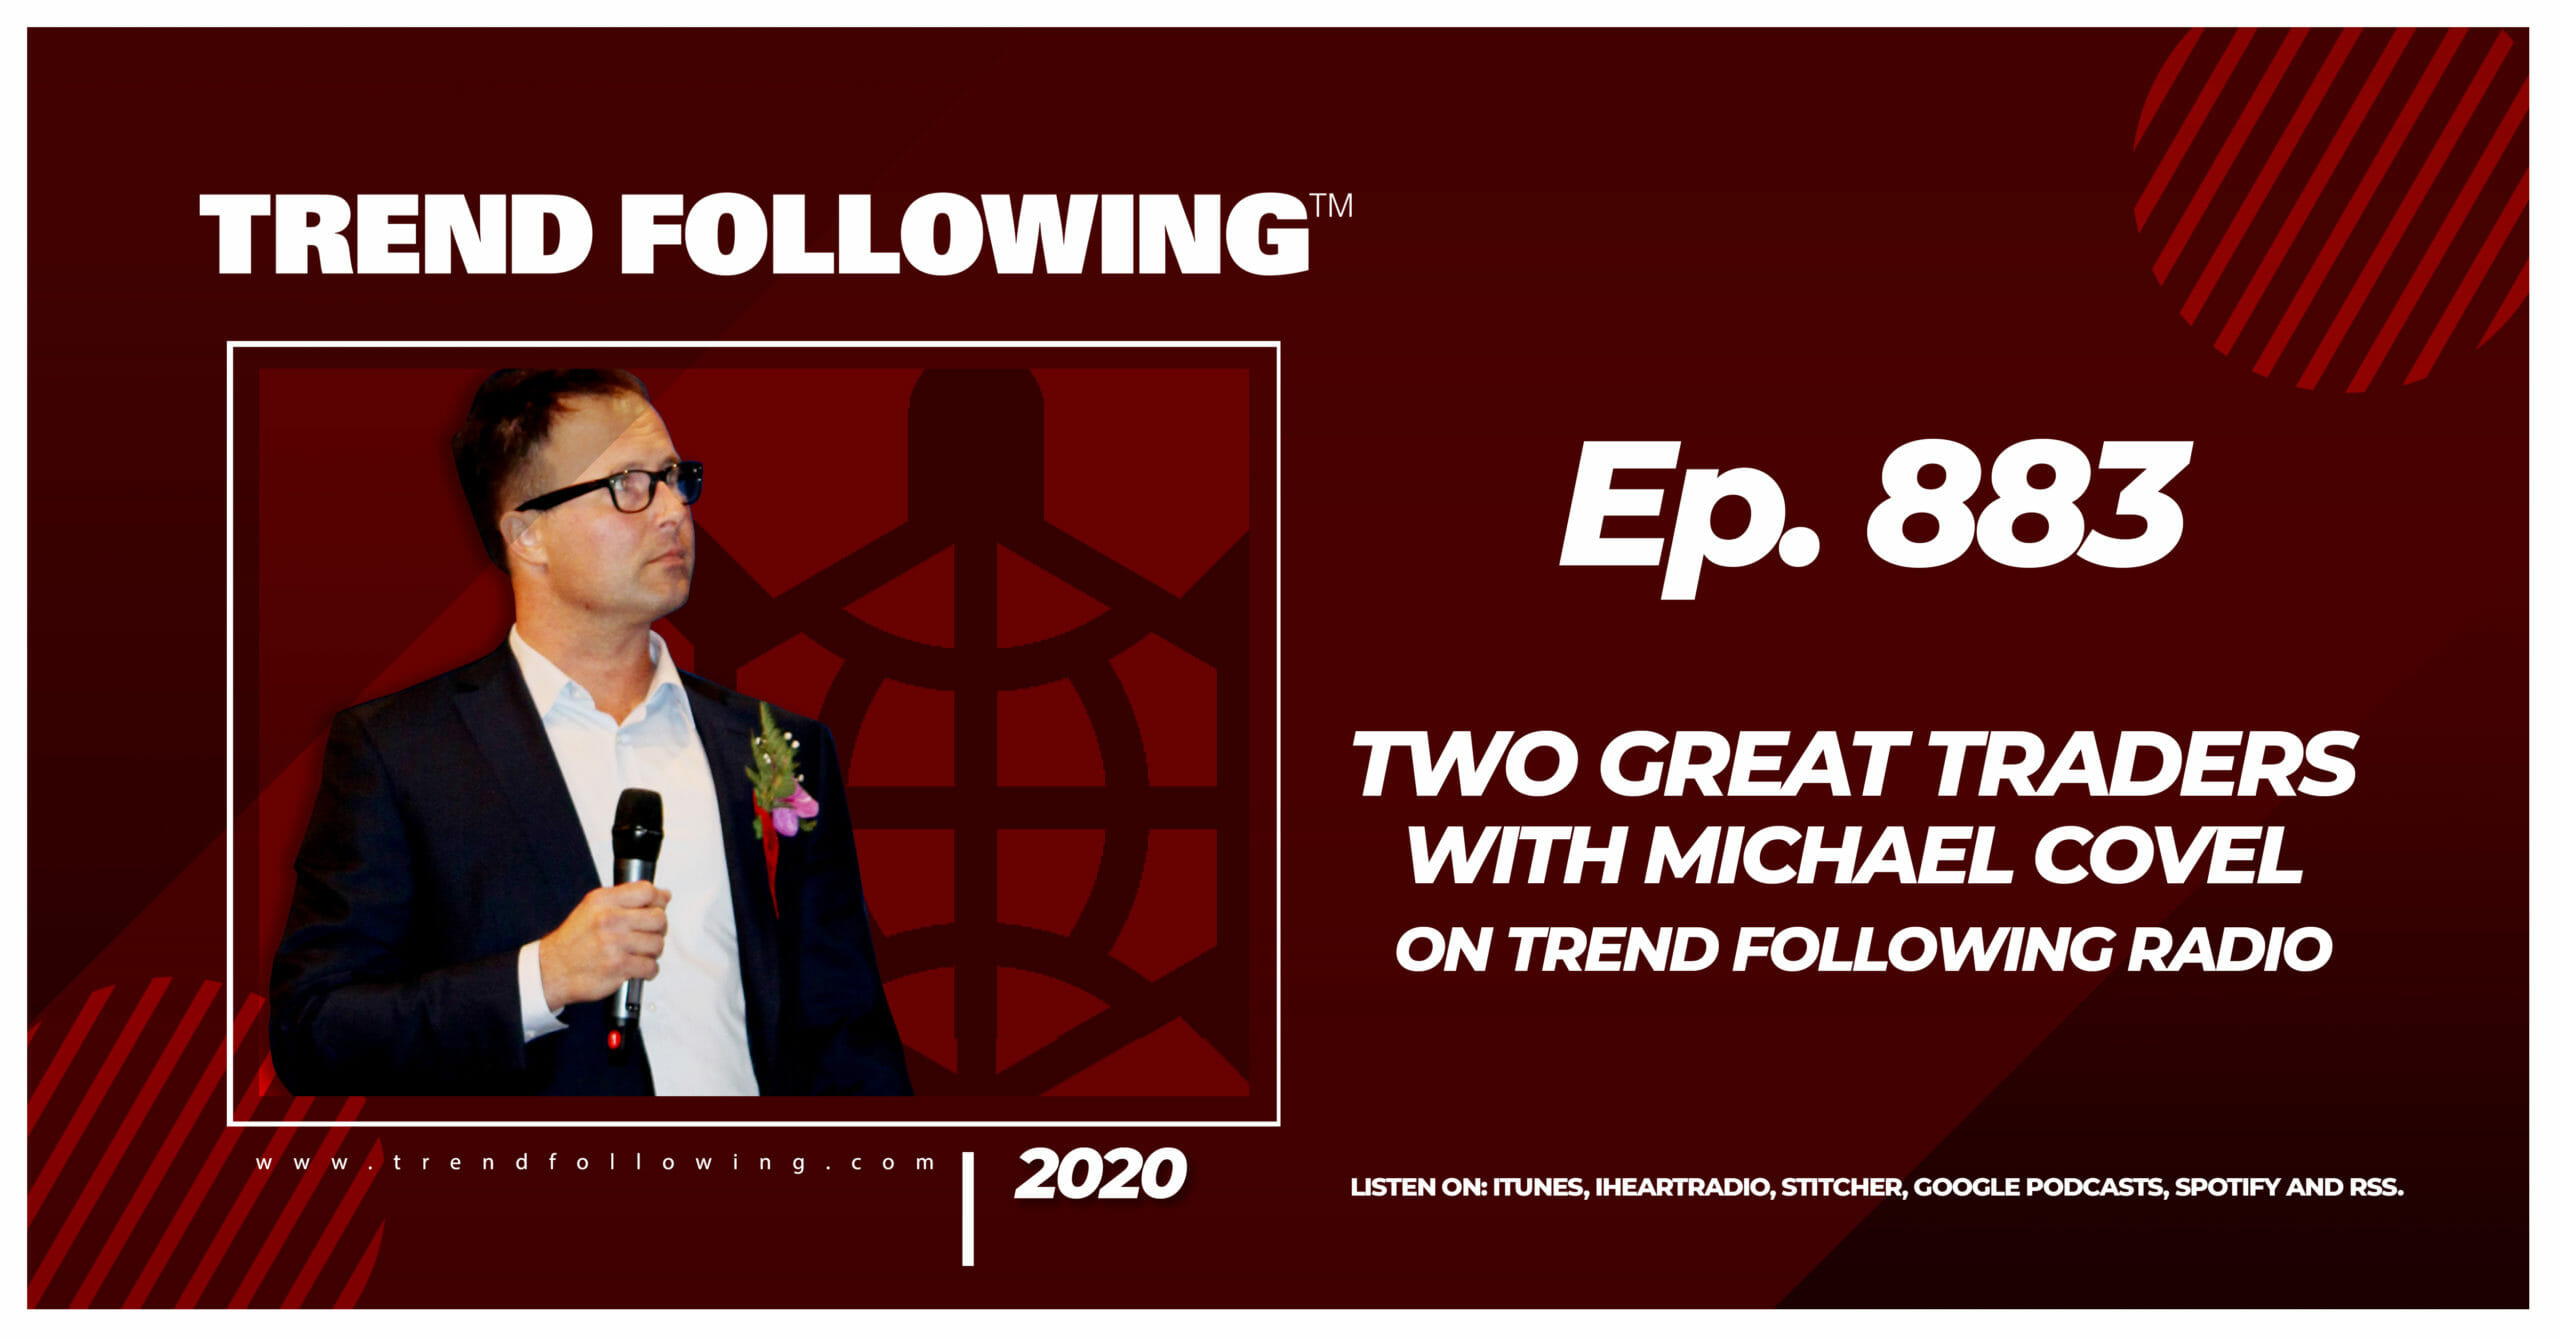 Two Great Traders with Michael Covel on Trend Following Radio